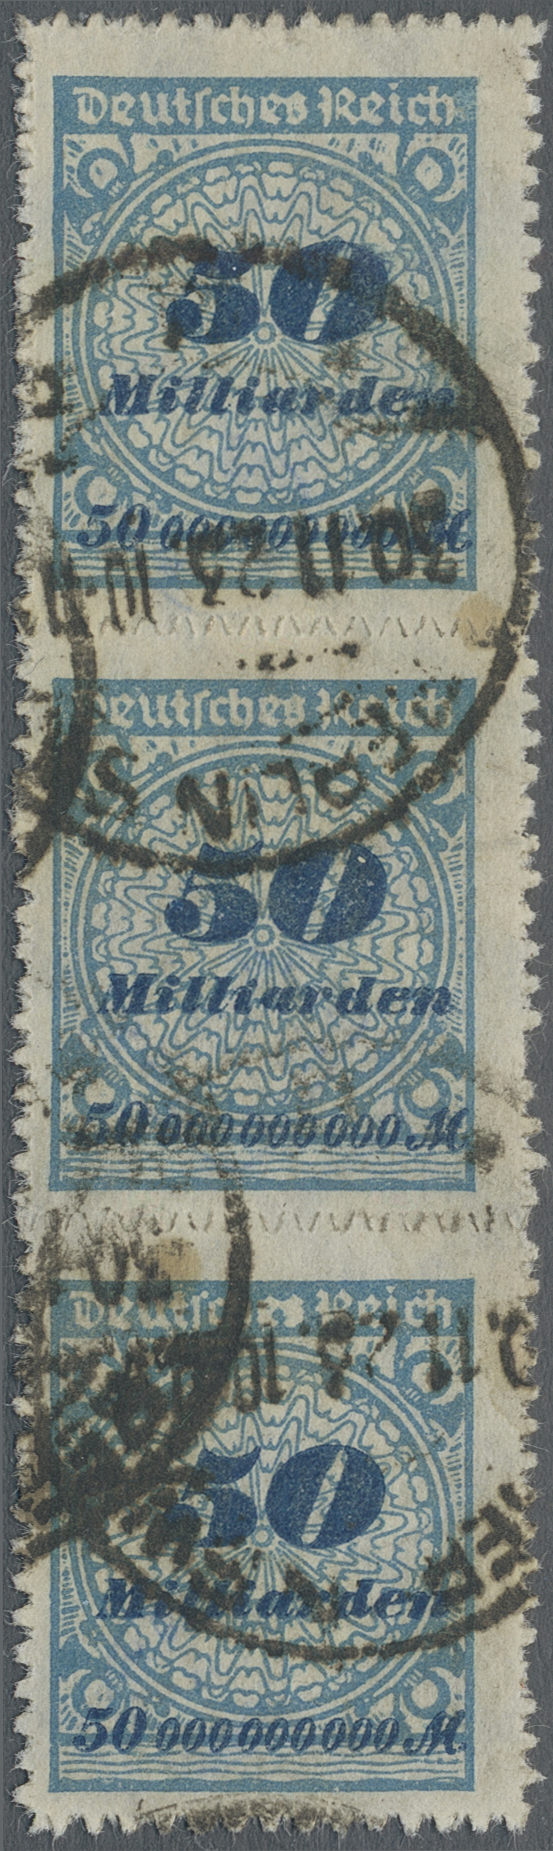 Lot 36673 - Deutsches Reich - Inflation  -  Auktionshaus Christoph Gärtner GmbH & Co. KG Sale #44 Collections Germany